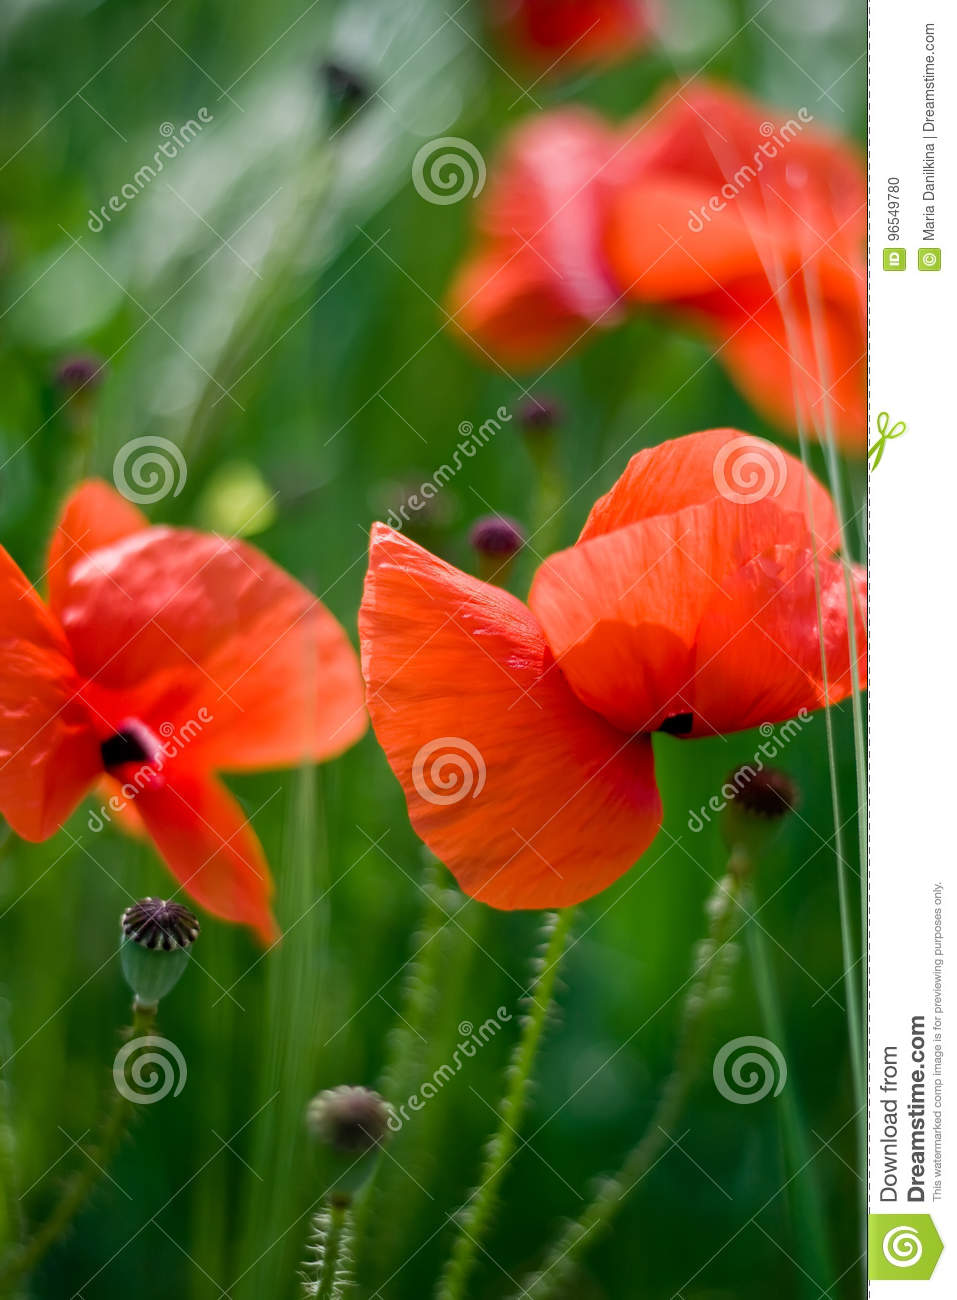 Poppy Flowers Stock Photo Image Of Color Green Background 96549780